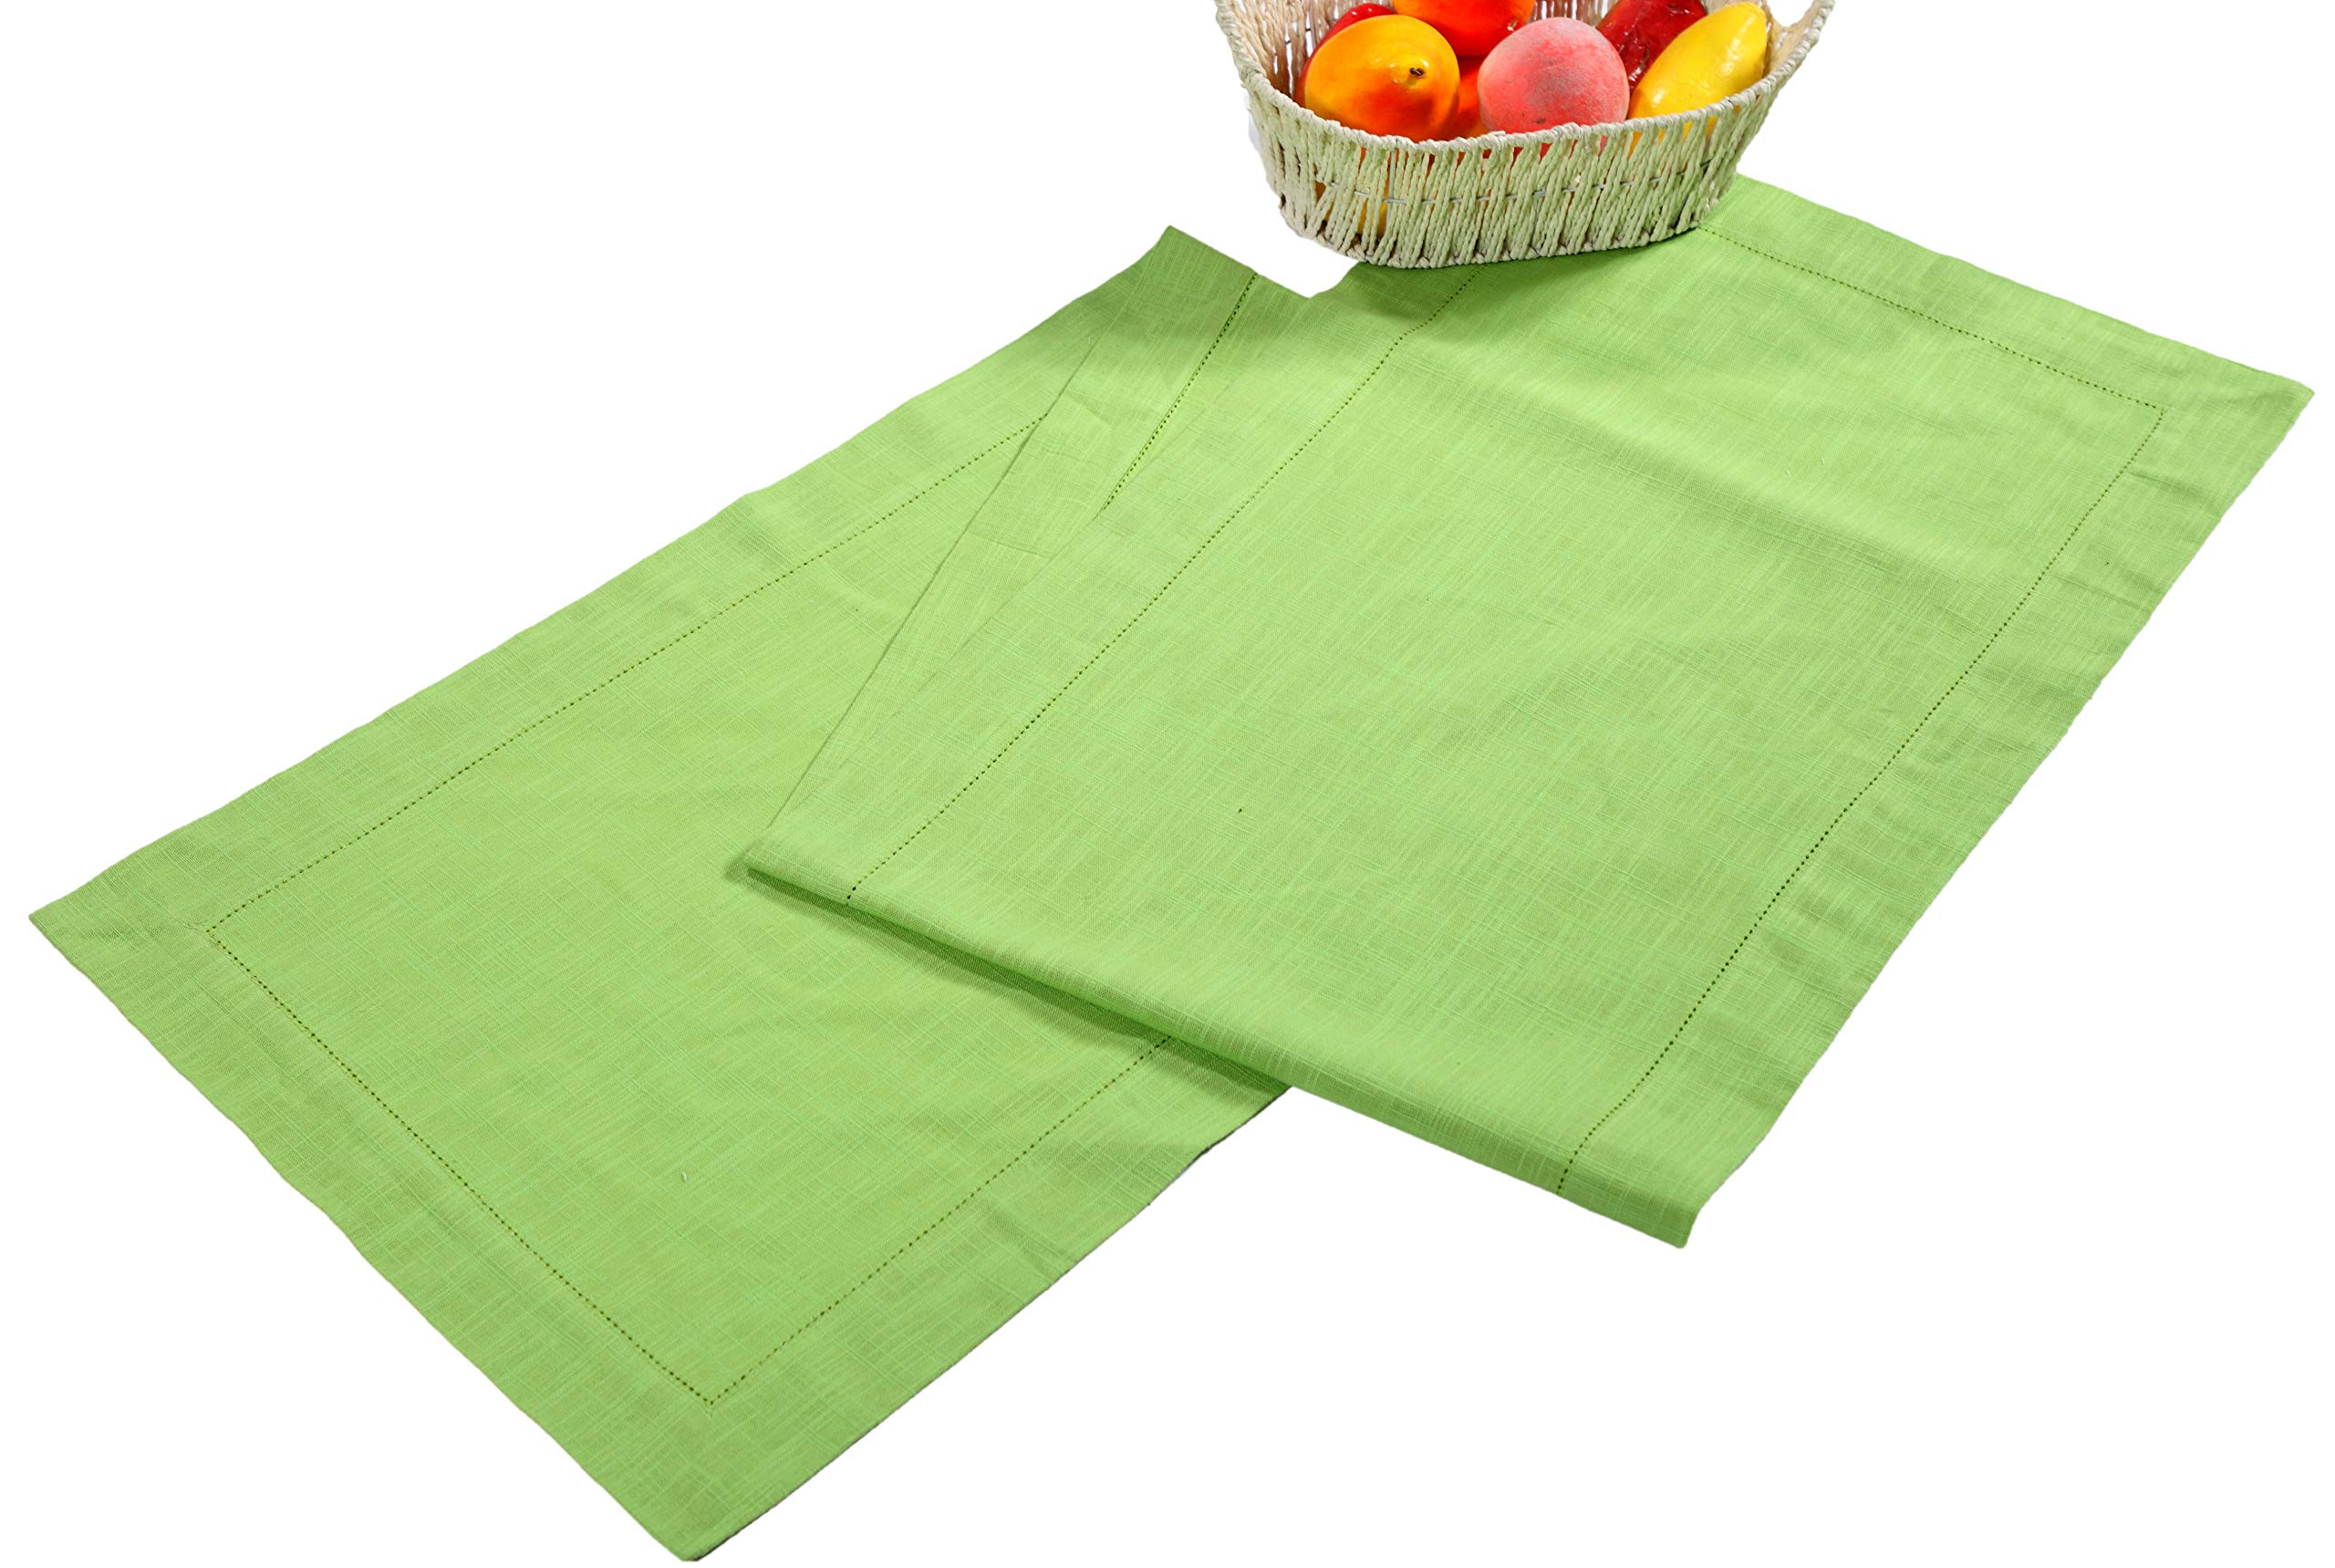 Linen Clubs Slub Cotton Table Runner in Lime Green Color with Hemstitched Detailing and Mitered Corner Finish on edges-100% Cotton Size 16x72Inch